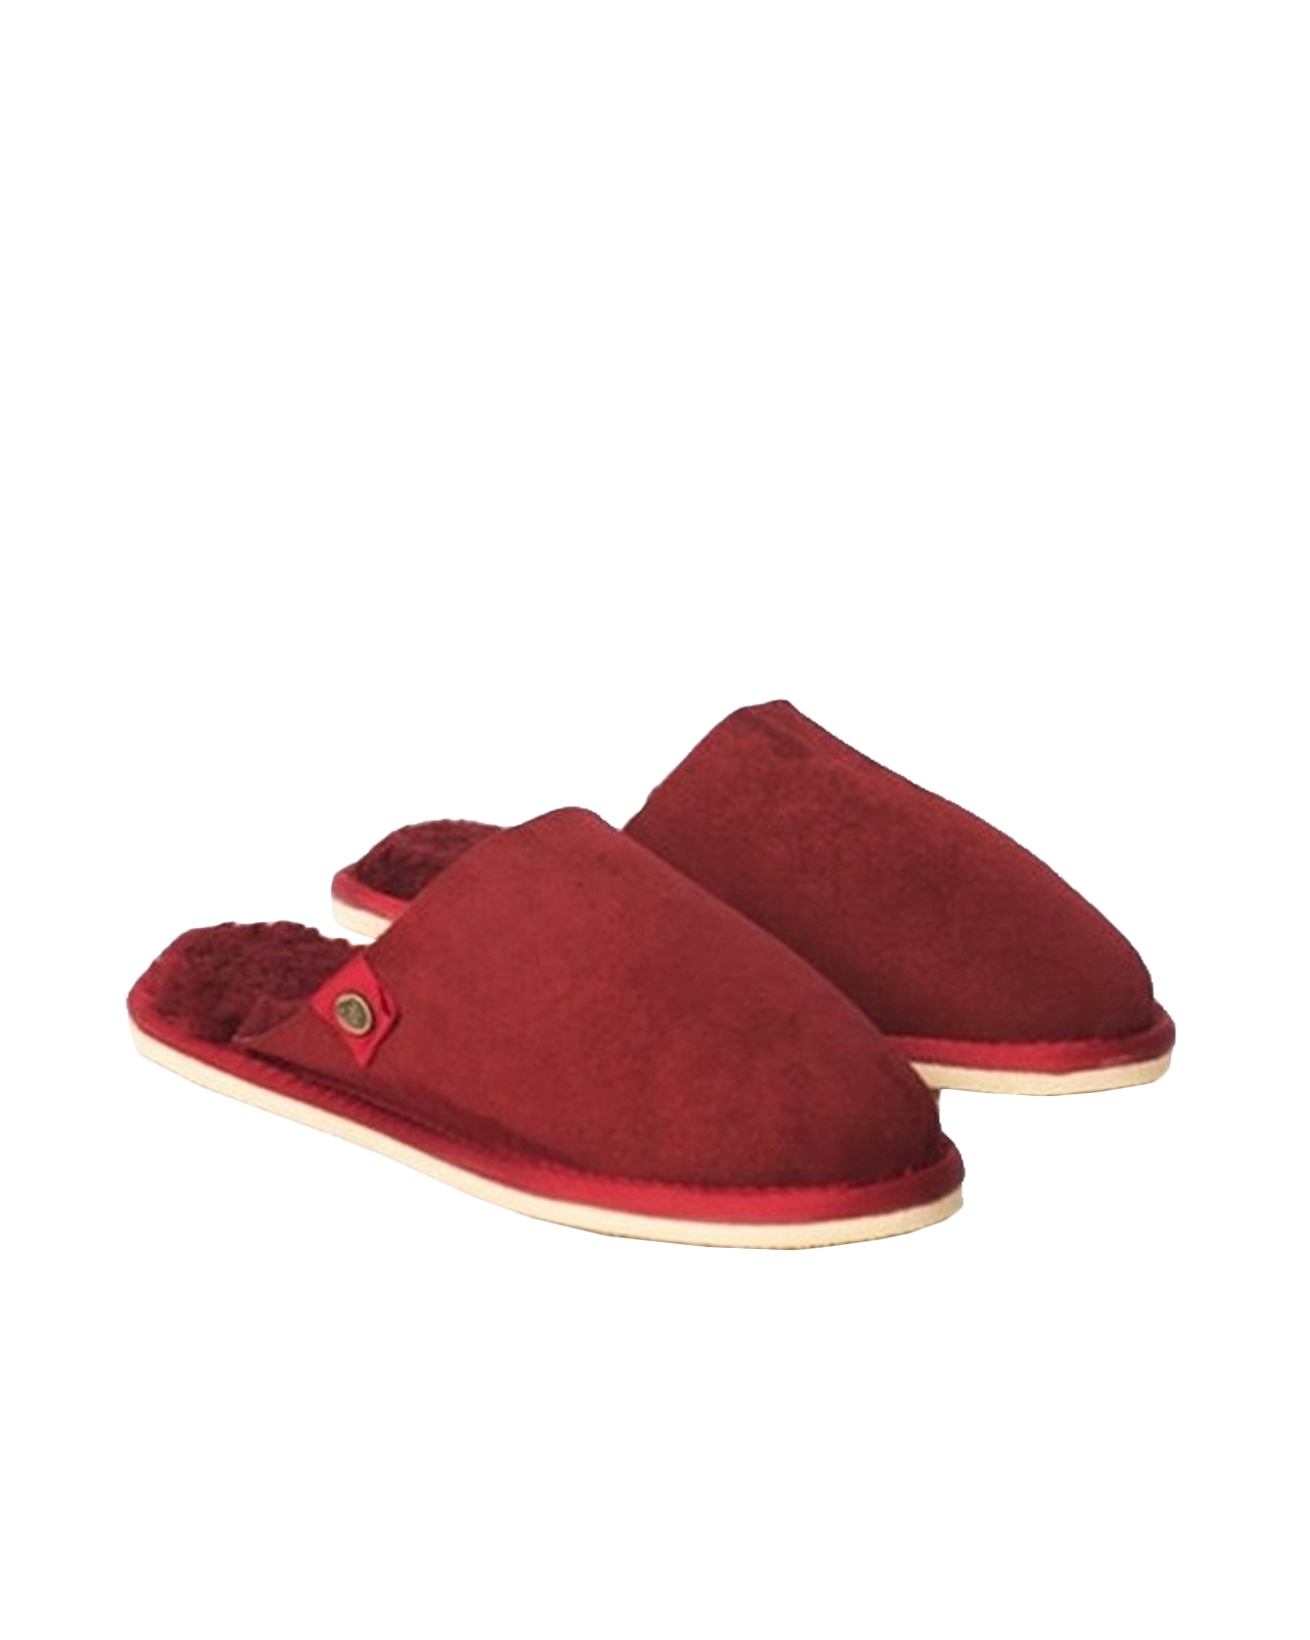 Ladies Mules - Size 5 - Red - 239